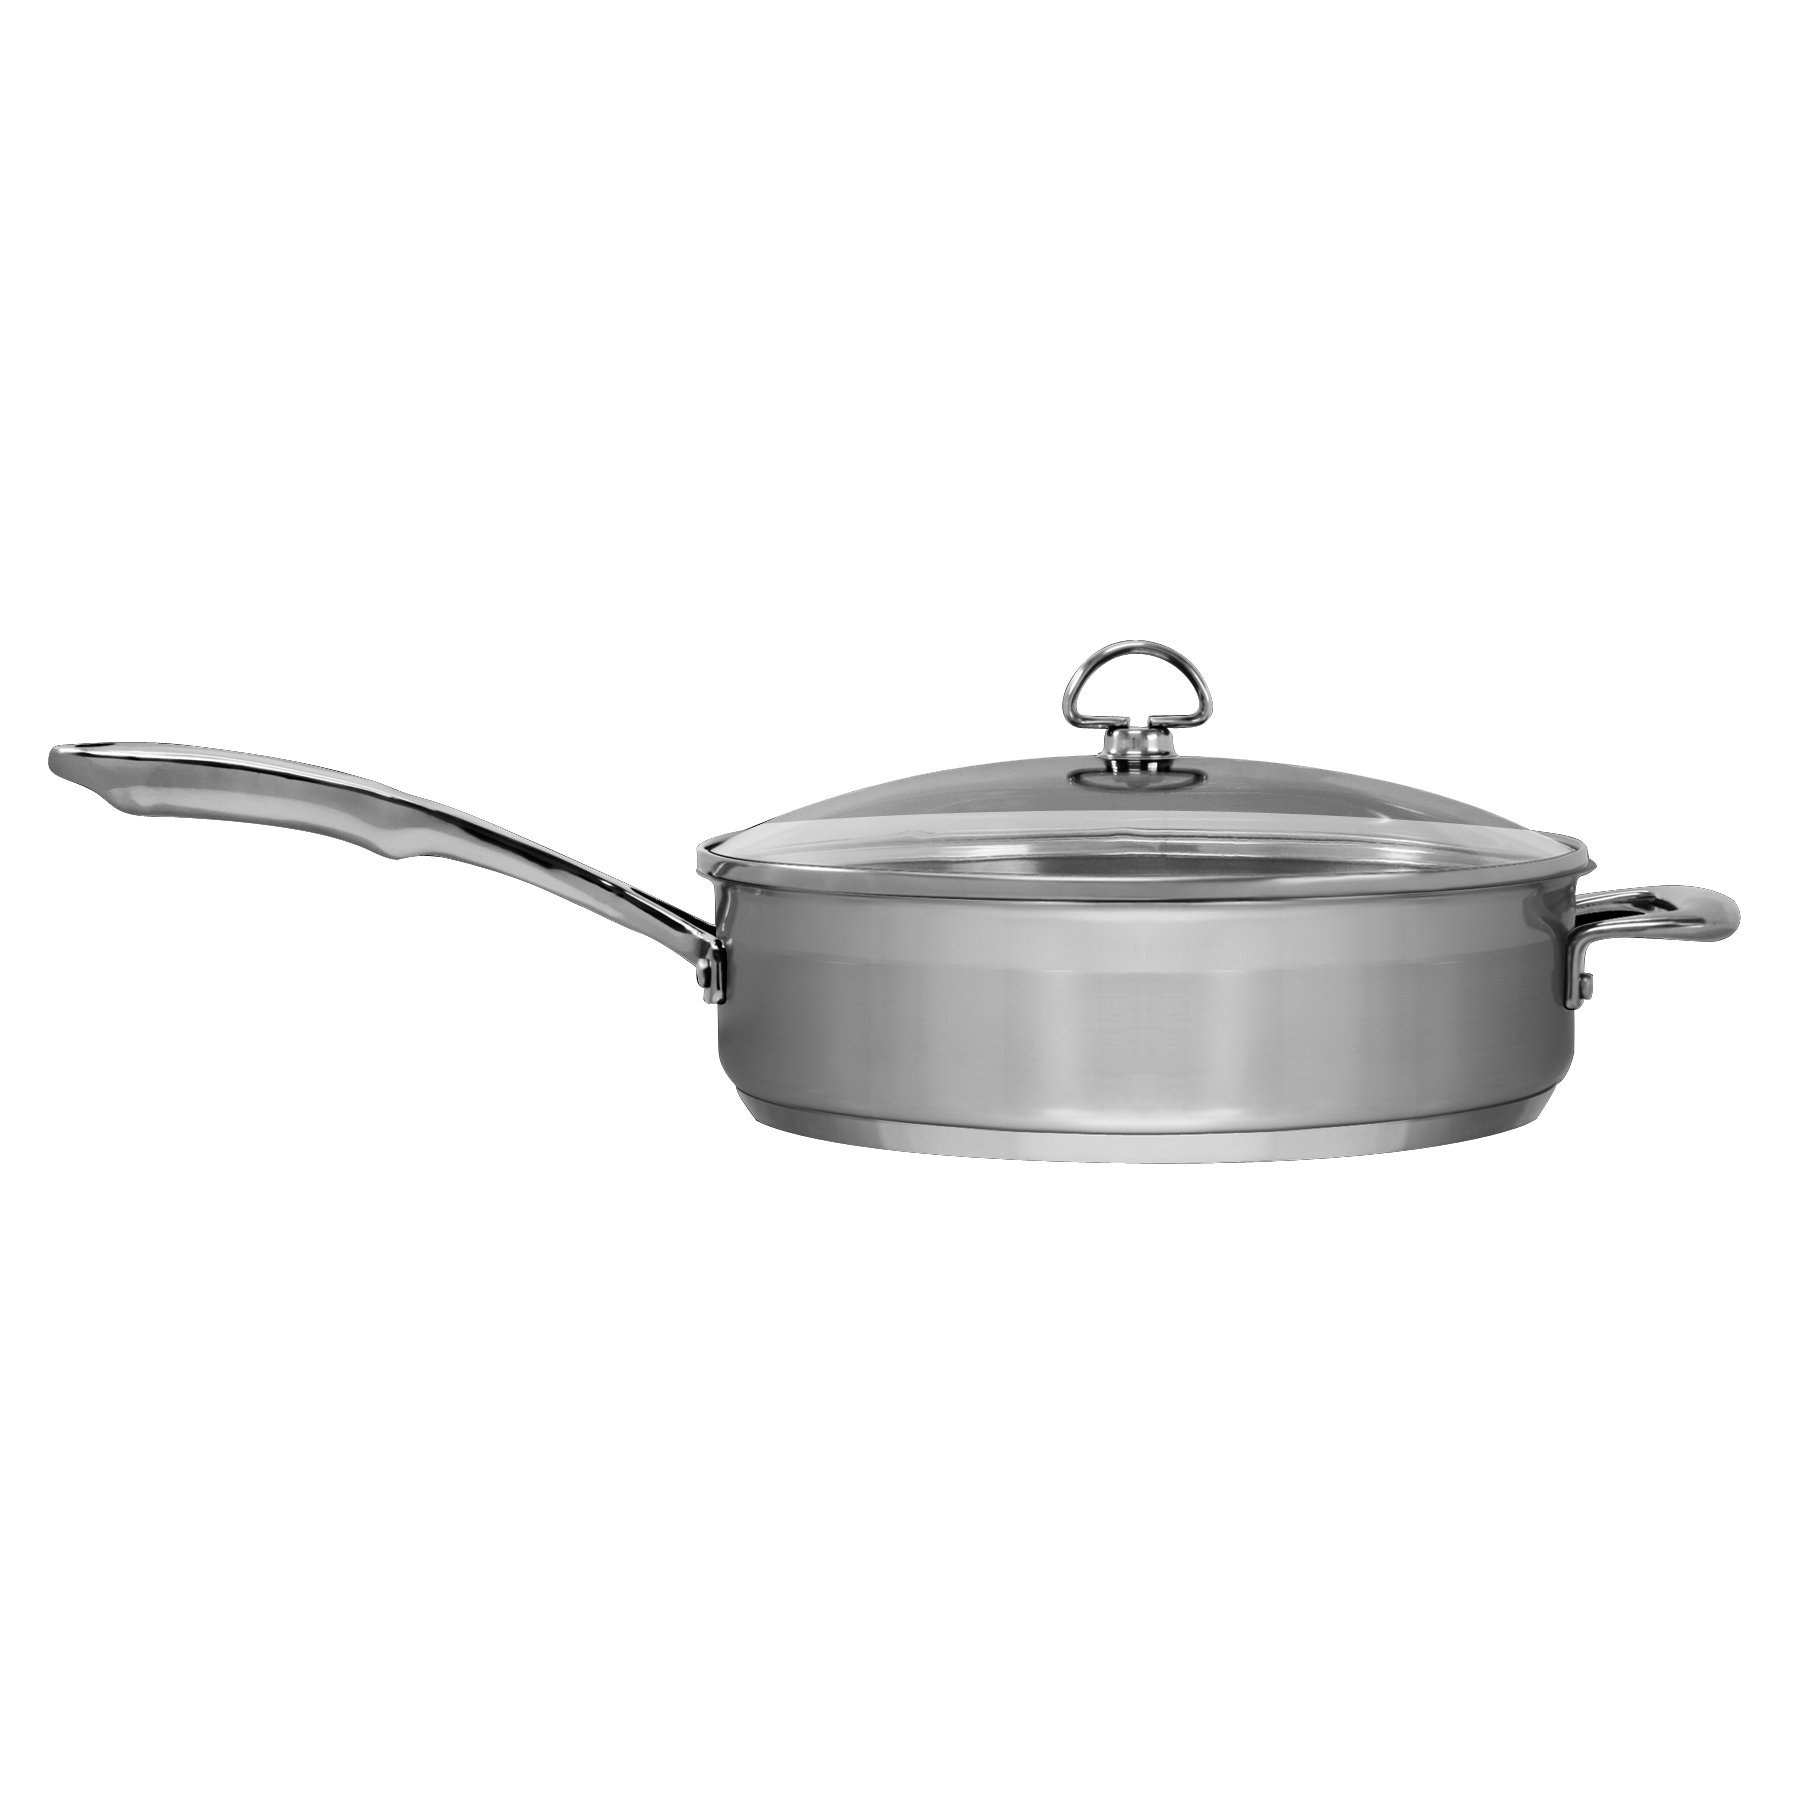 Chantal SLIN34-280 Induction 21 Steel Saute Skillet with Glass Tempered Lid (5-Quart) by Chantal (Image #2)